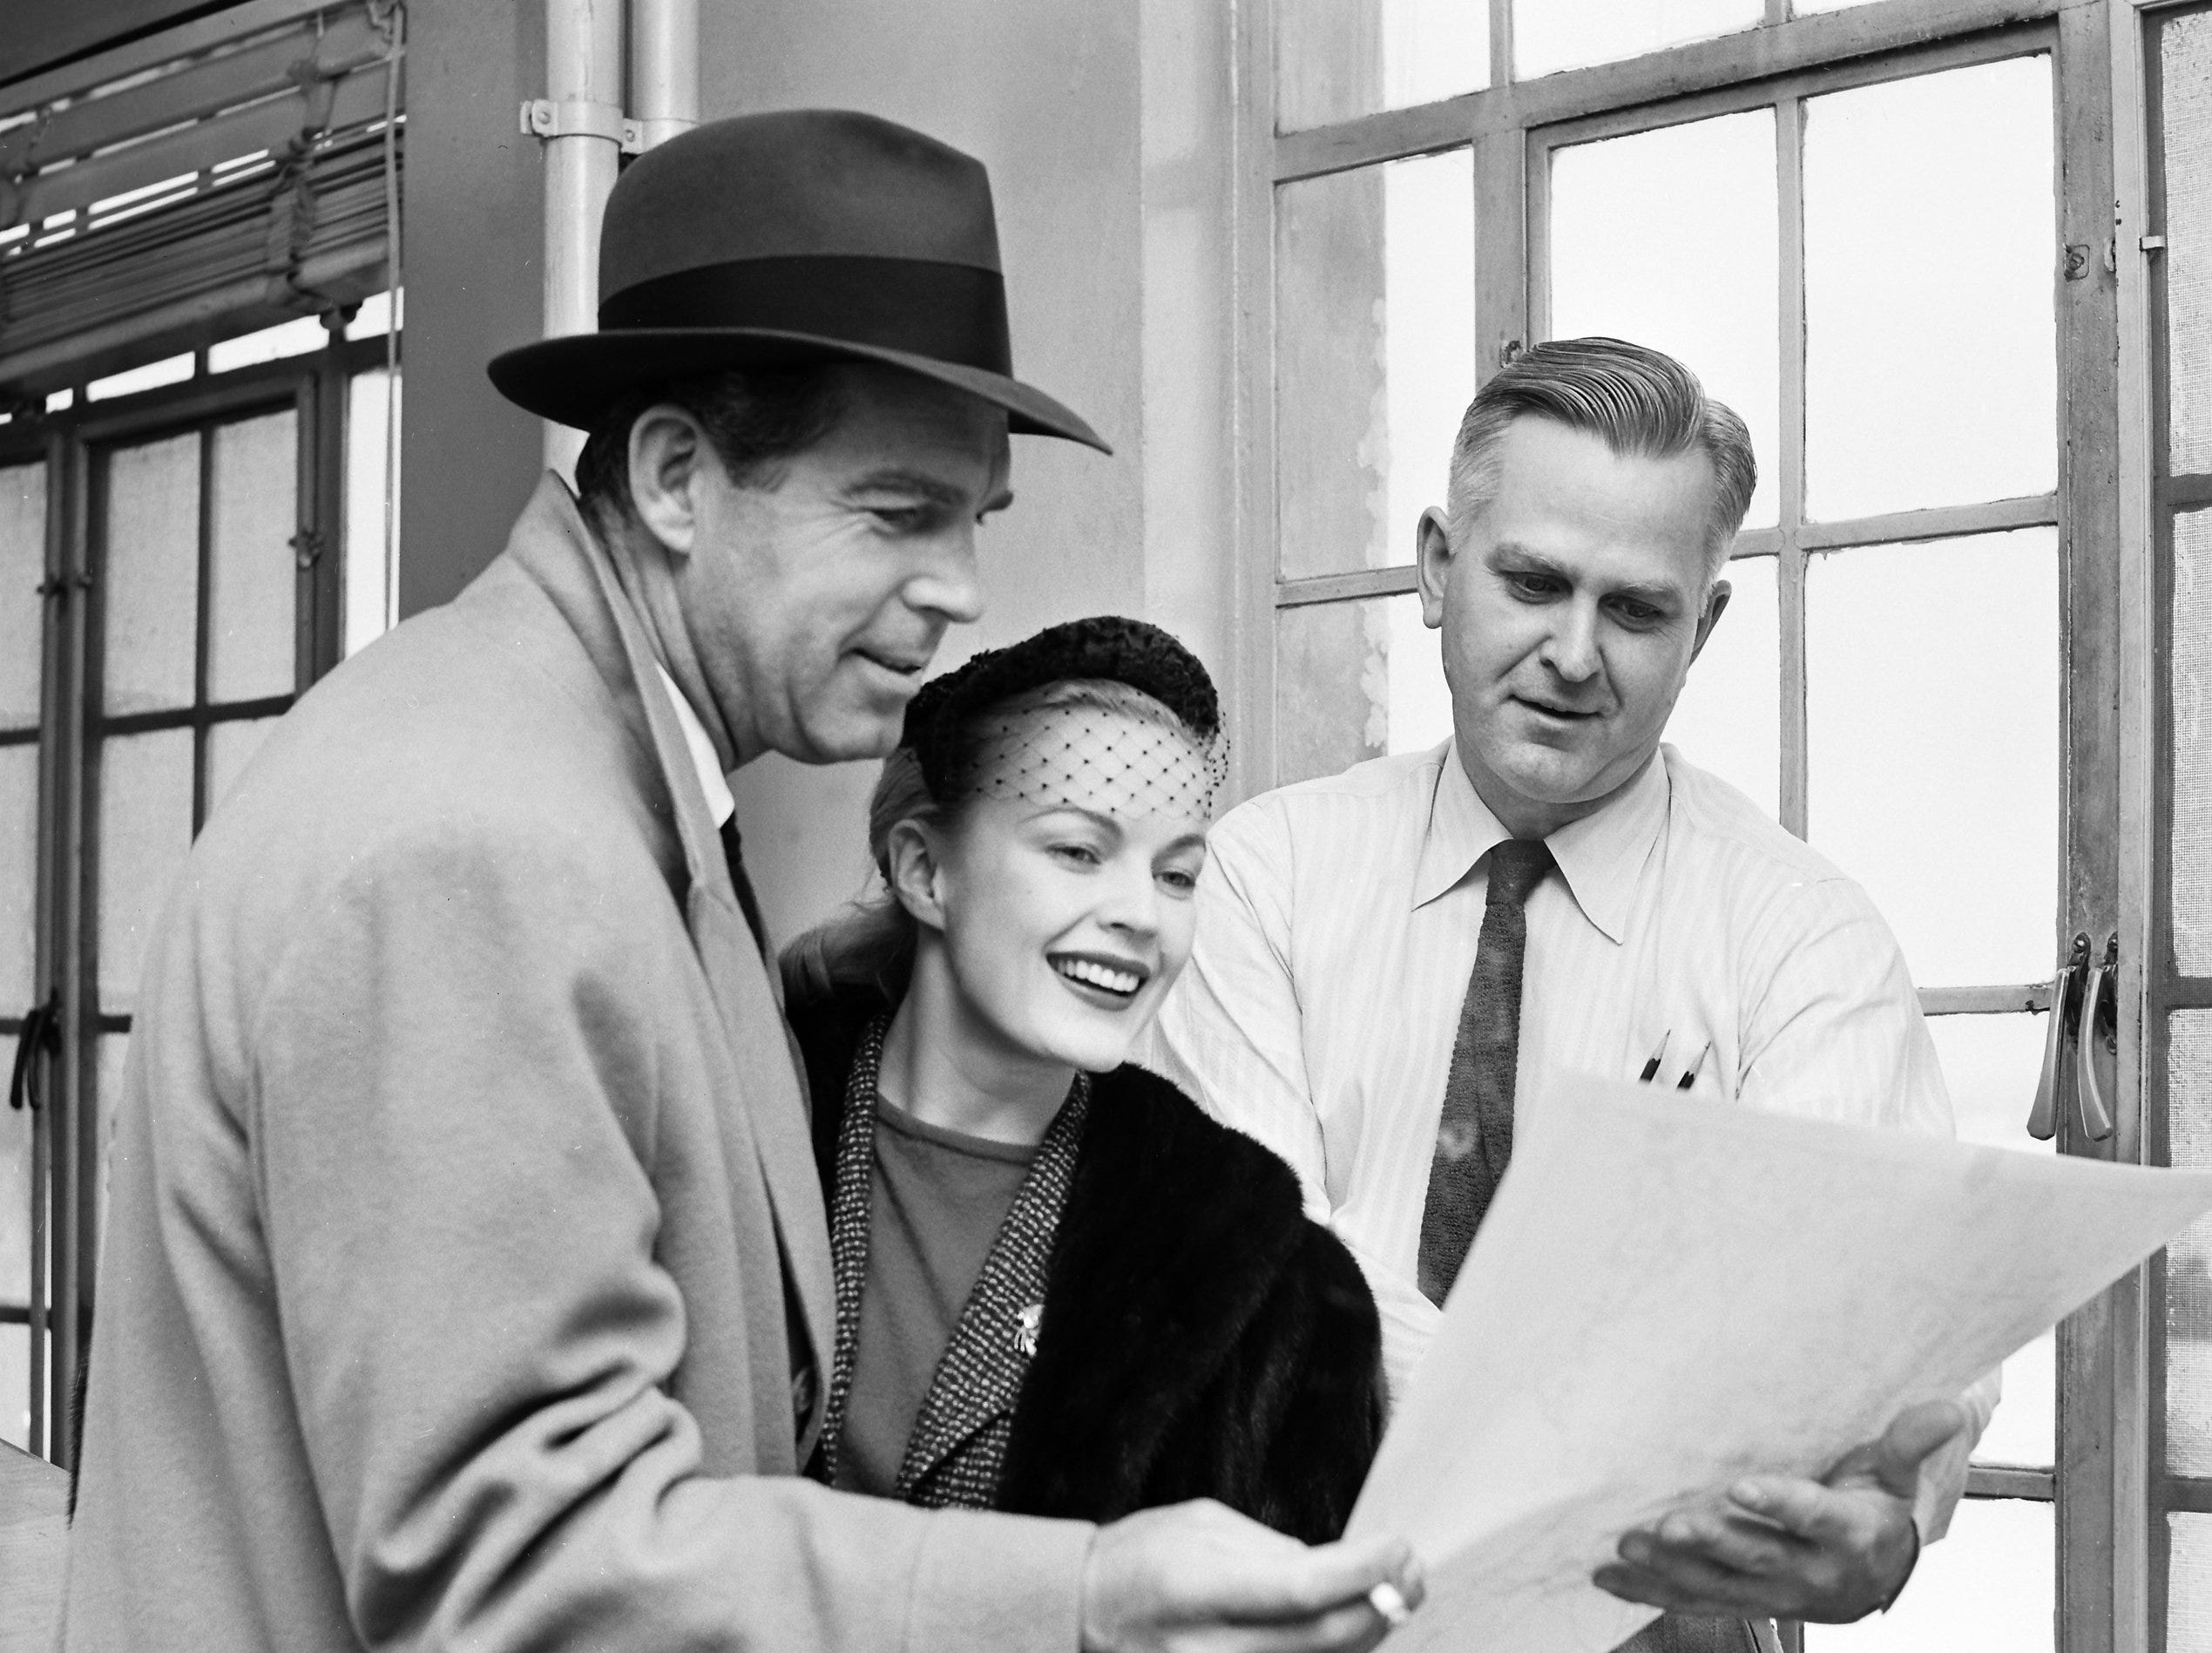 A snow-enforced delay on 23 Jan 1956 at Municipal Airport gave Hollywood star Fred MacMurray (Left) and his wife, June Haver, a former Memphian, the chance to check weather reports with James C. Hicks of 3060 Carnes, an aviation forecaster.